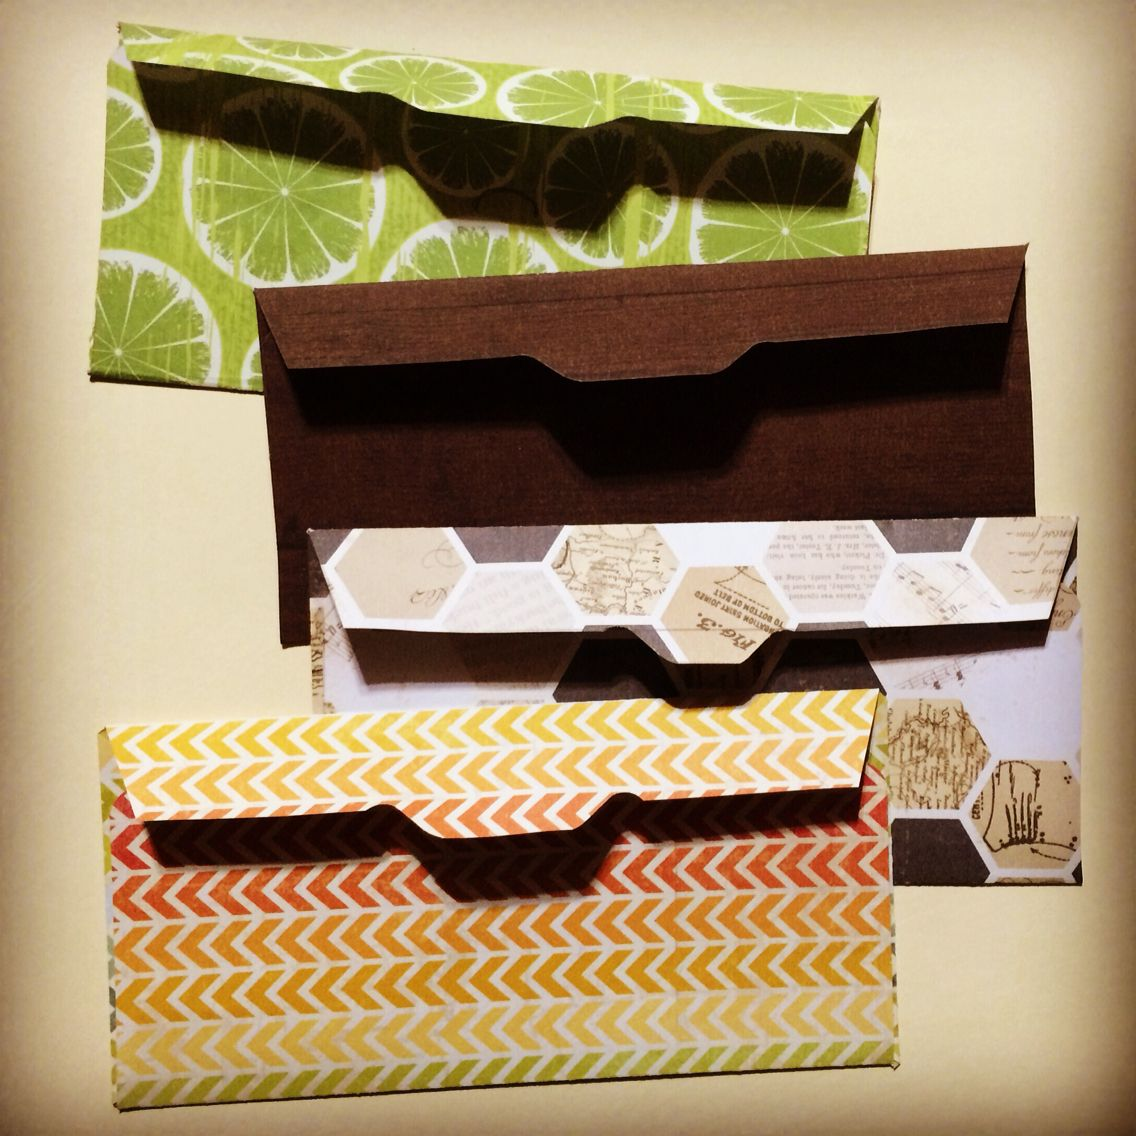 paper envelopes created with template from a bank cash envelope